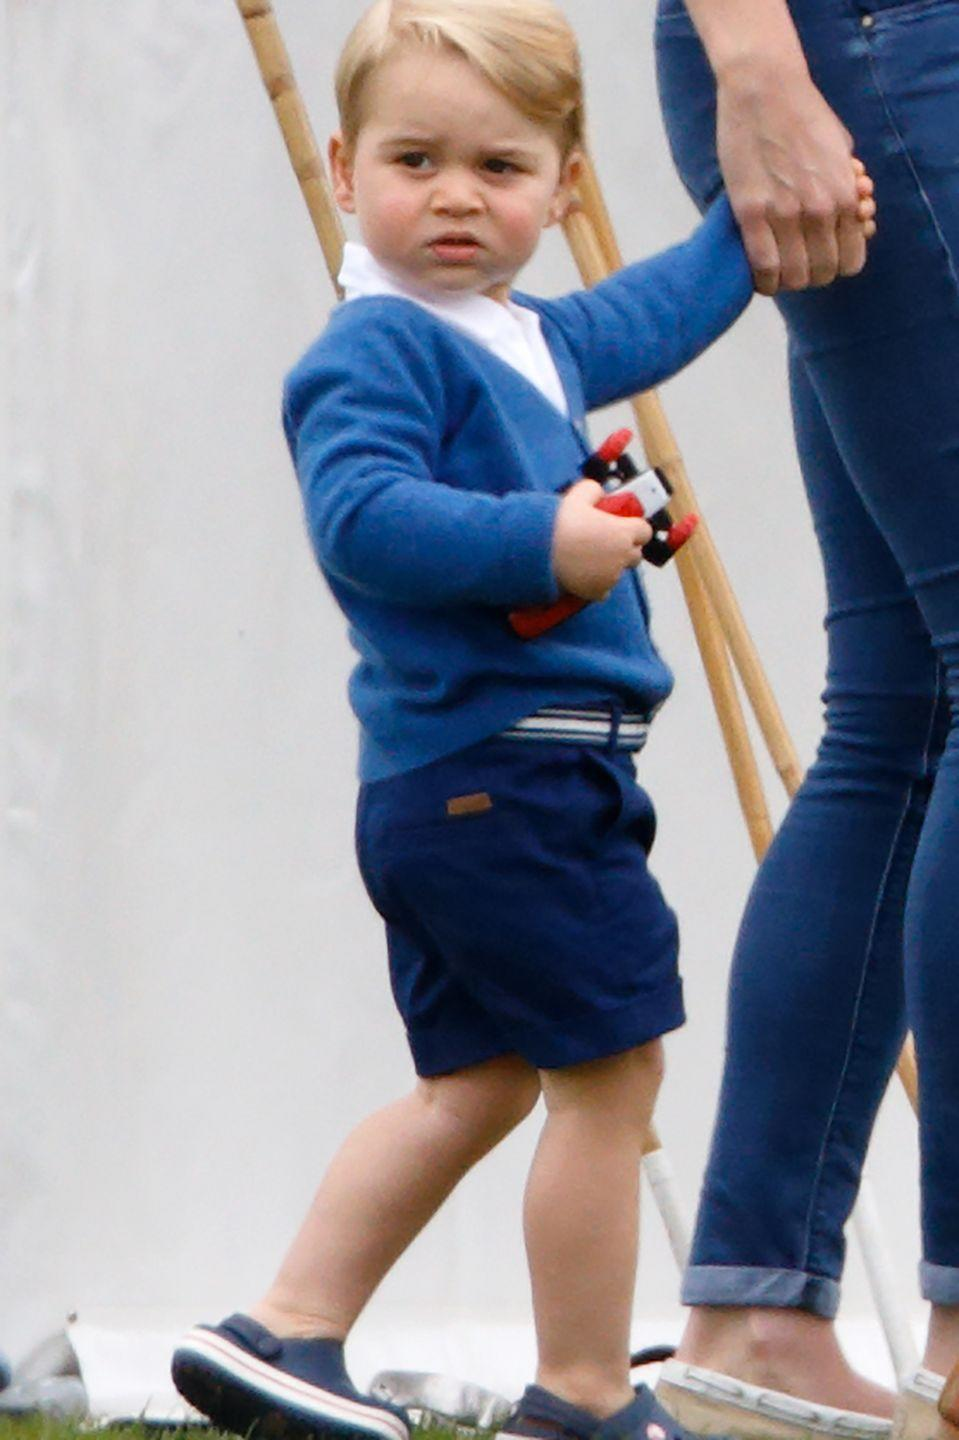 """<p>Including <a href=""""https://www.standard.co.uk/news/uk/royal-baby-news-how-the-birth-of-kate-middletons-second-child-will-be-announced-10220388.html"""" rel=""""nofollow noopener"""" target=""""_blank"""" data-ylk=""""slk:significant figures"""" class=""""link rapid-noclick-resp"""">significant figures</a> such as the Lord Mayor of London, the Governors of Northern Ireland, the Channel Islands, and the Isle of Man. </p>"""